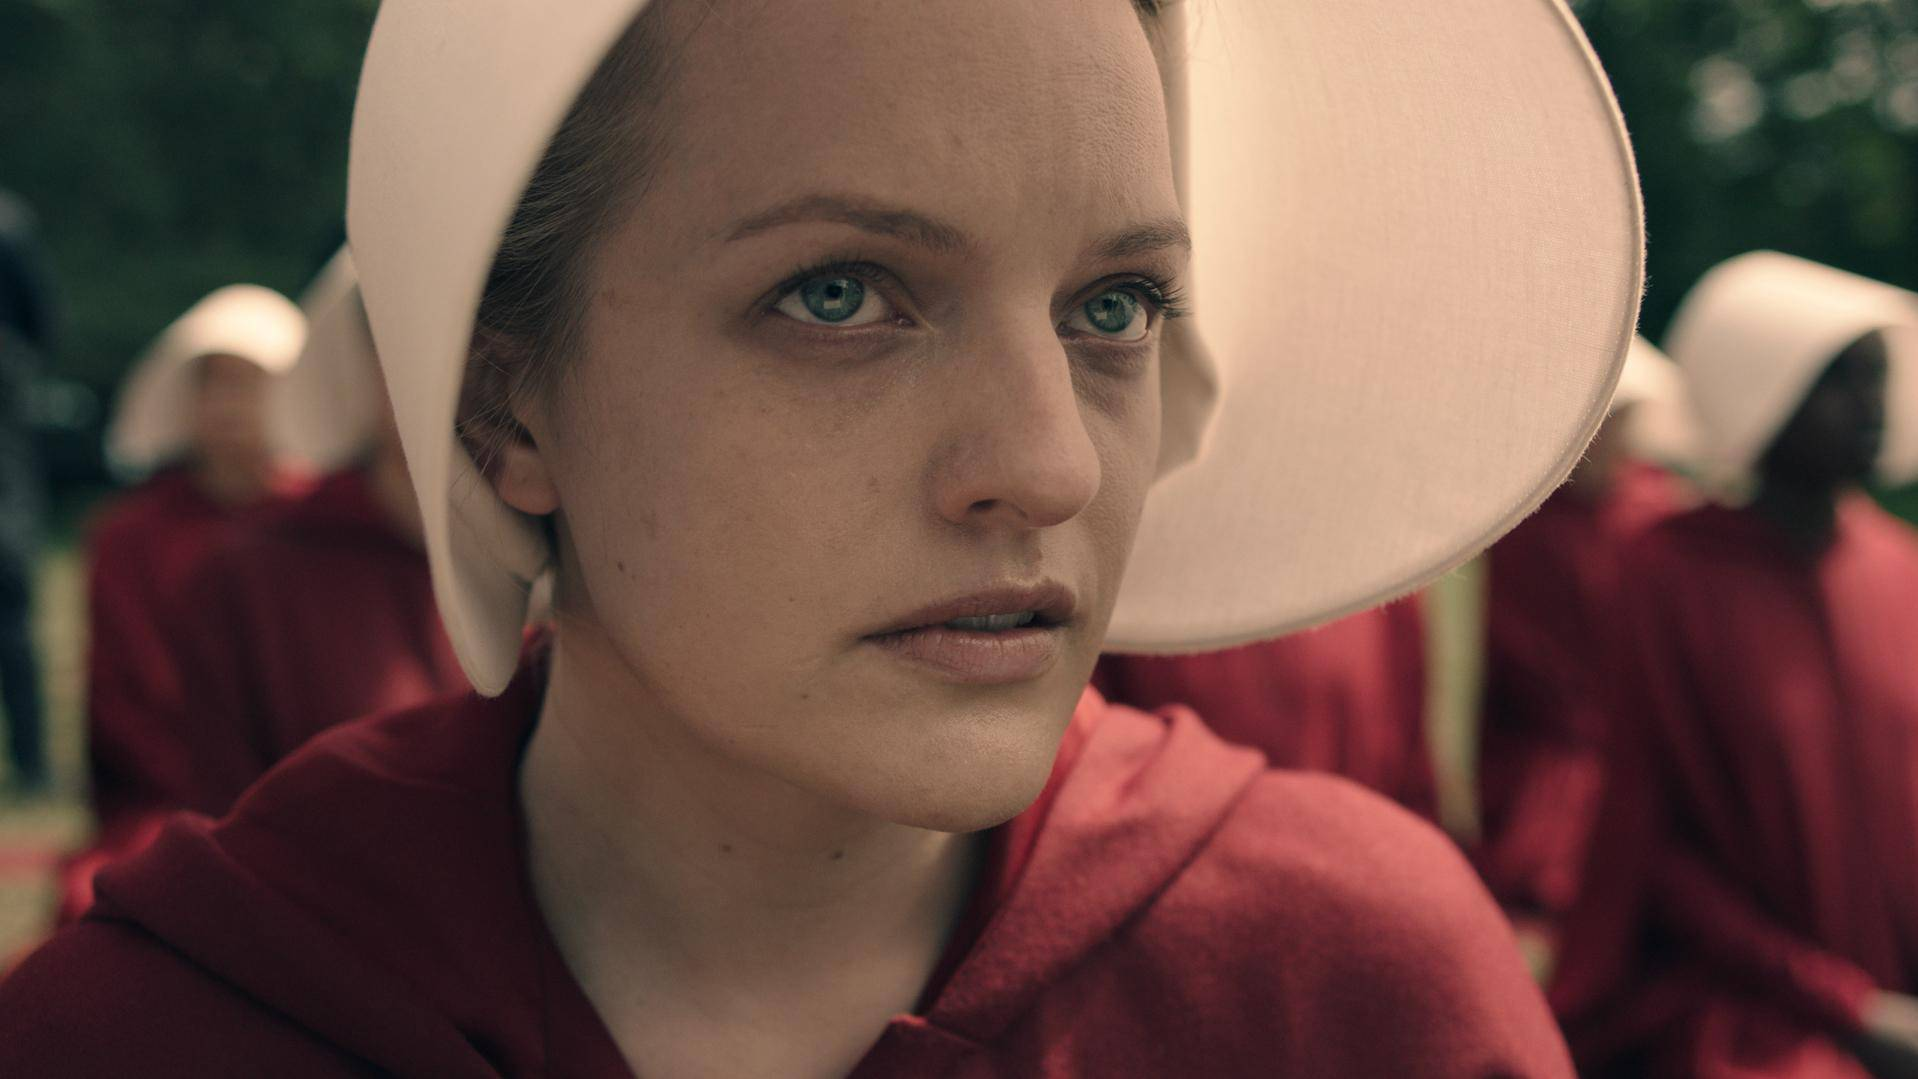 'Handmaid's Tale' Renewed for Season 3 by Hulu